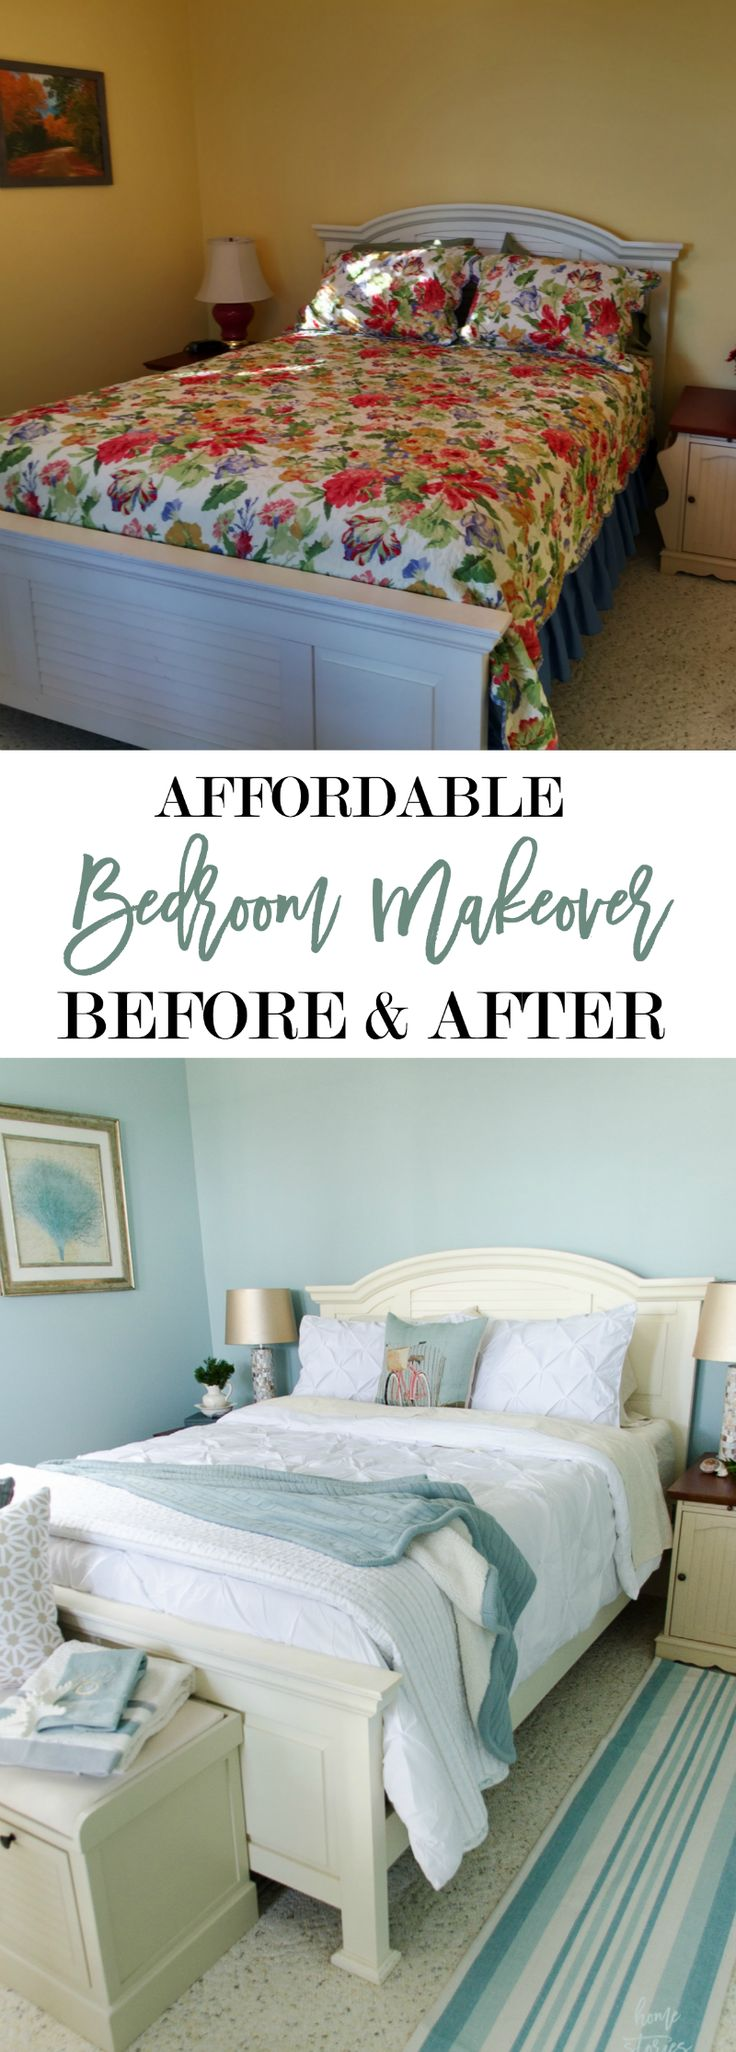 better homes and gardens bedroom makeover 17 best ideas about aqua bedrooms on aqua 20360